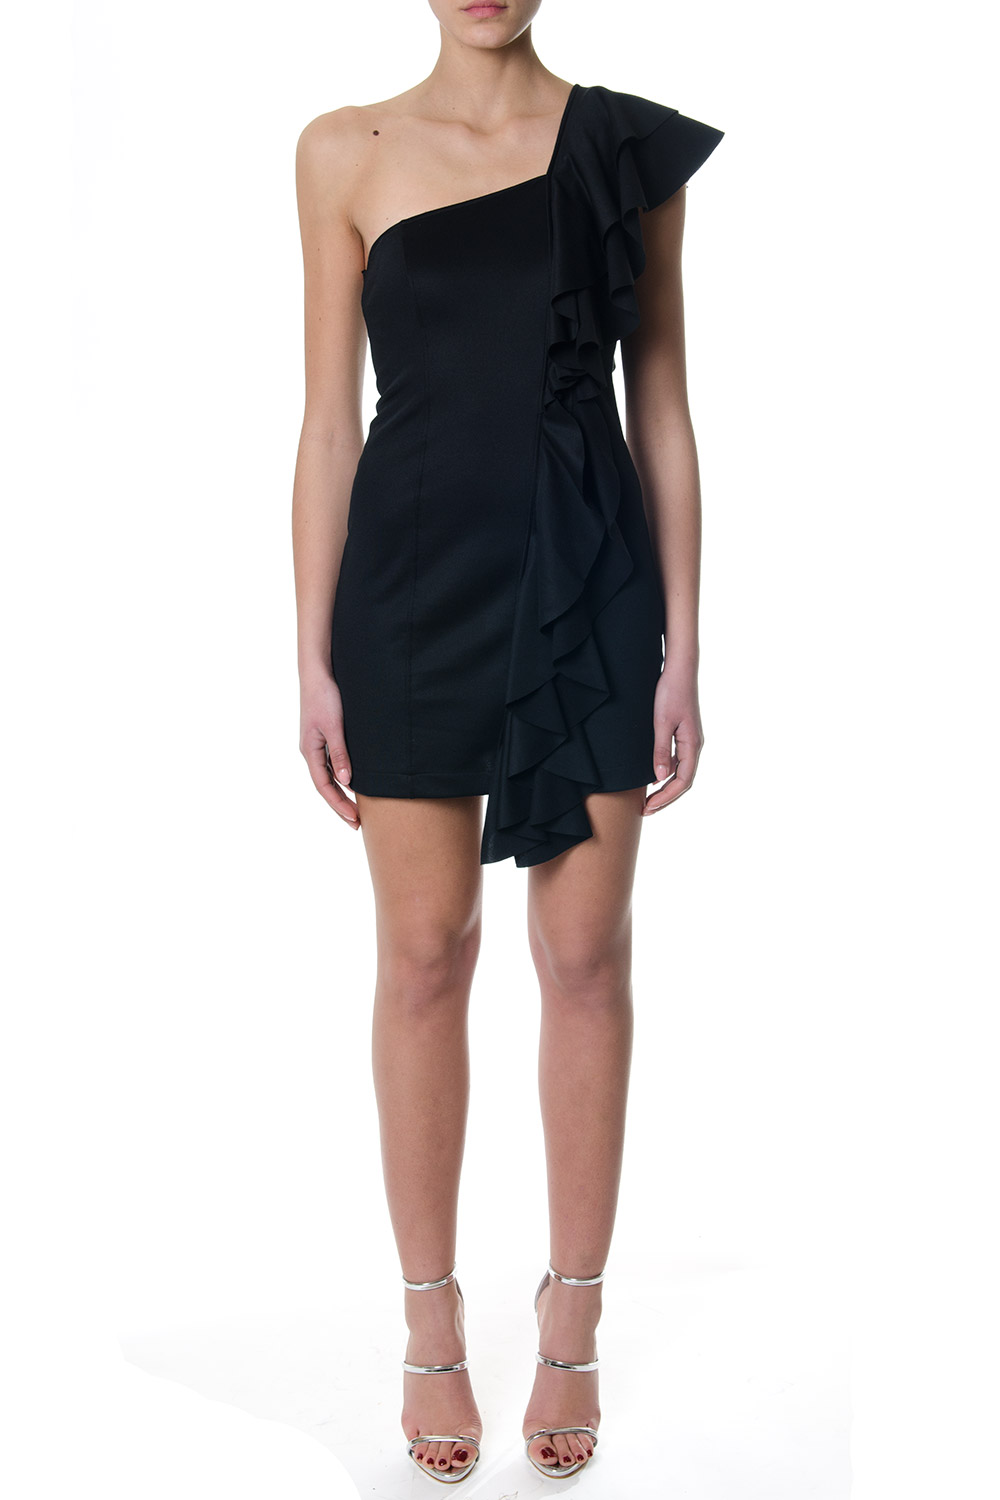 2018 With Detail Black Frill Mini Ss Boutique Dress Galiano Dondup SI11YE